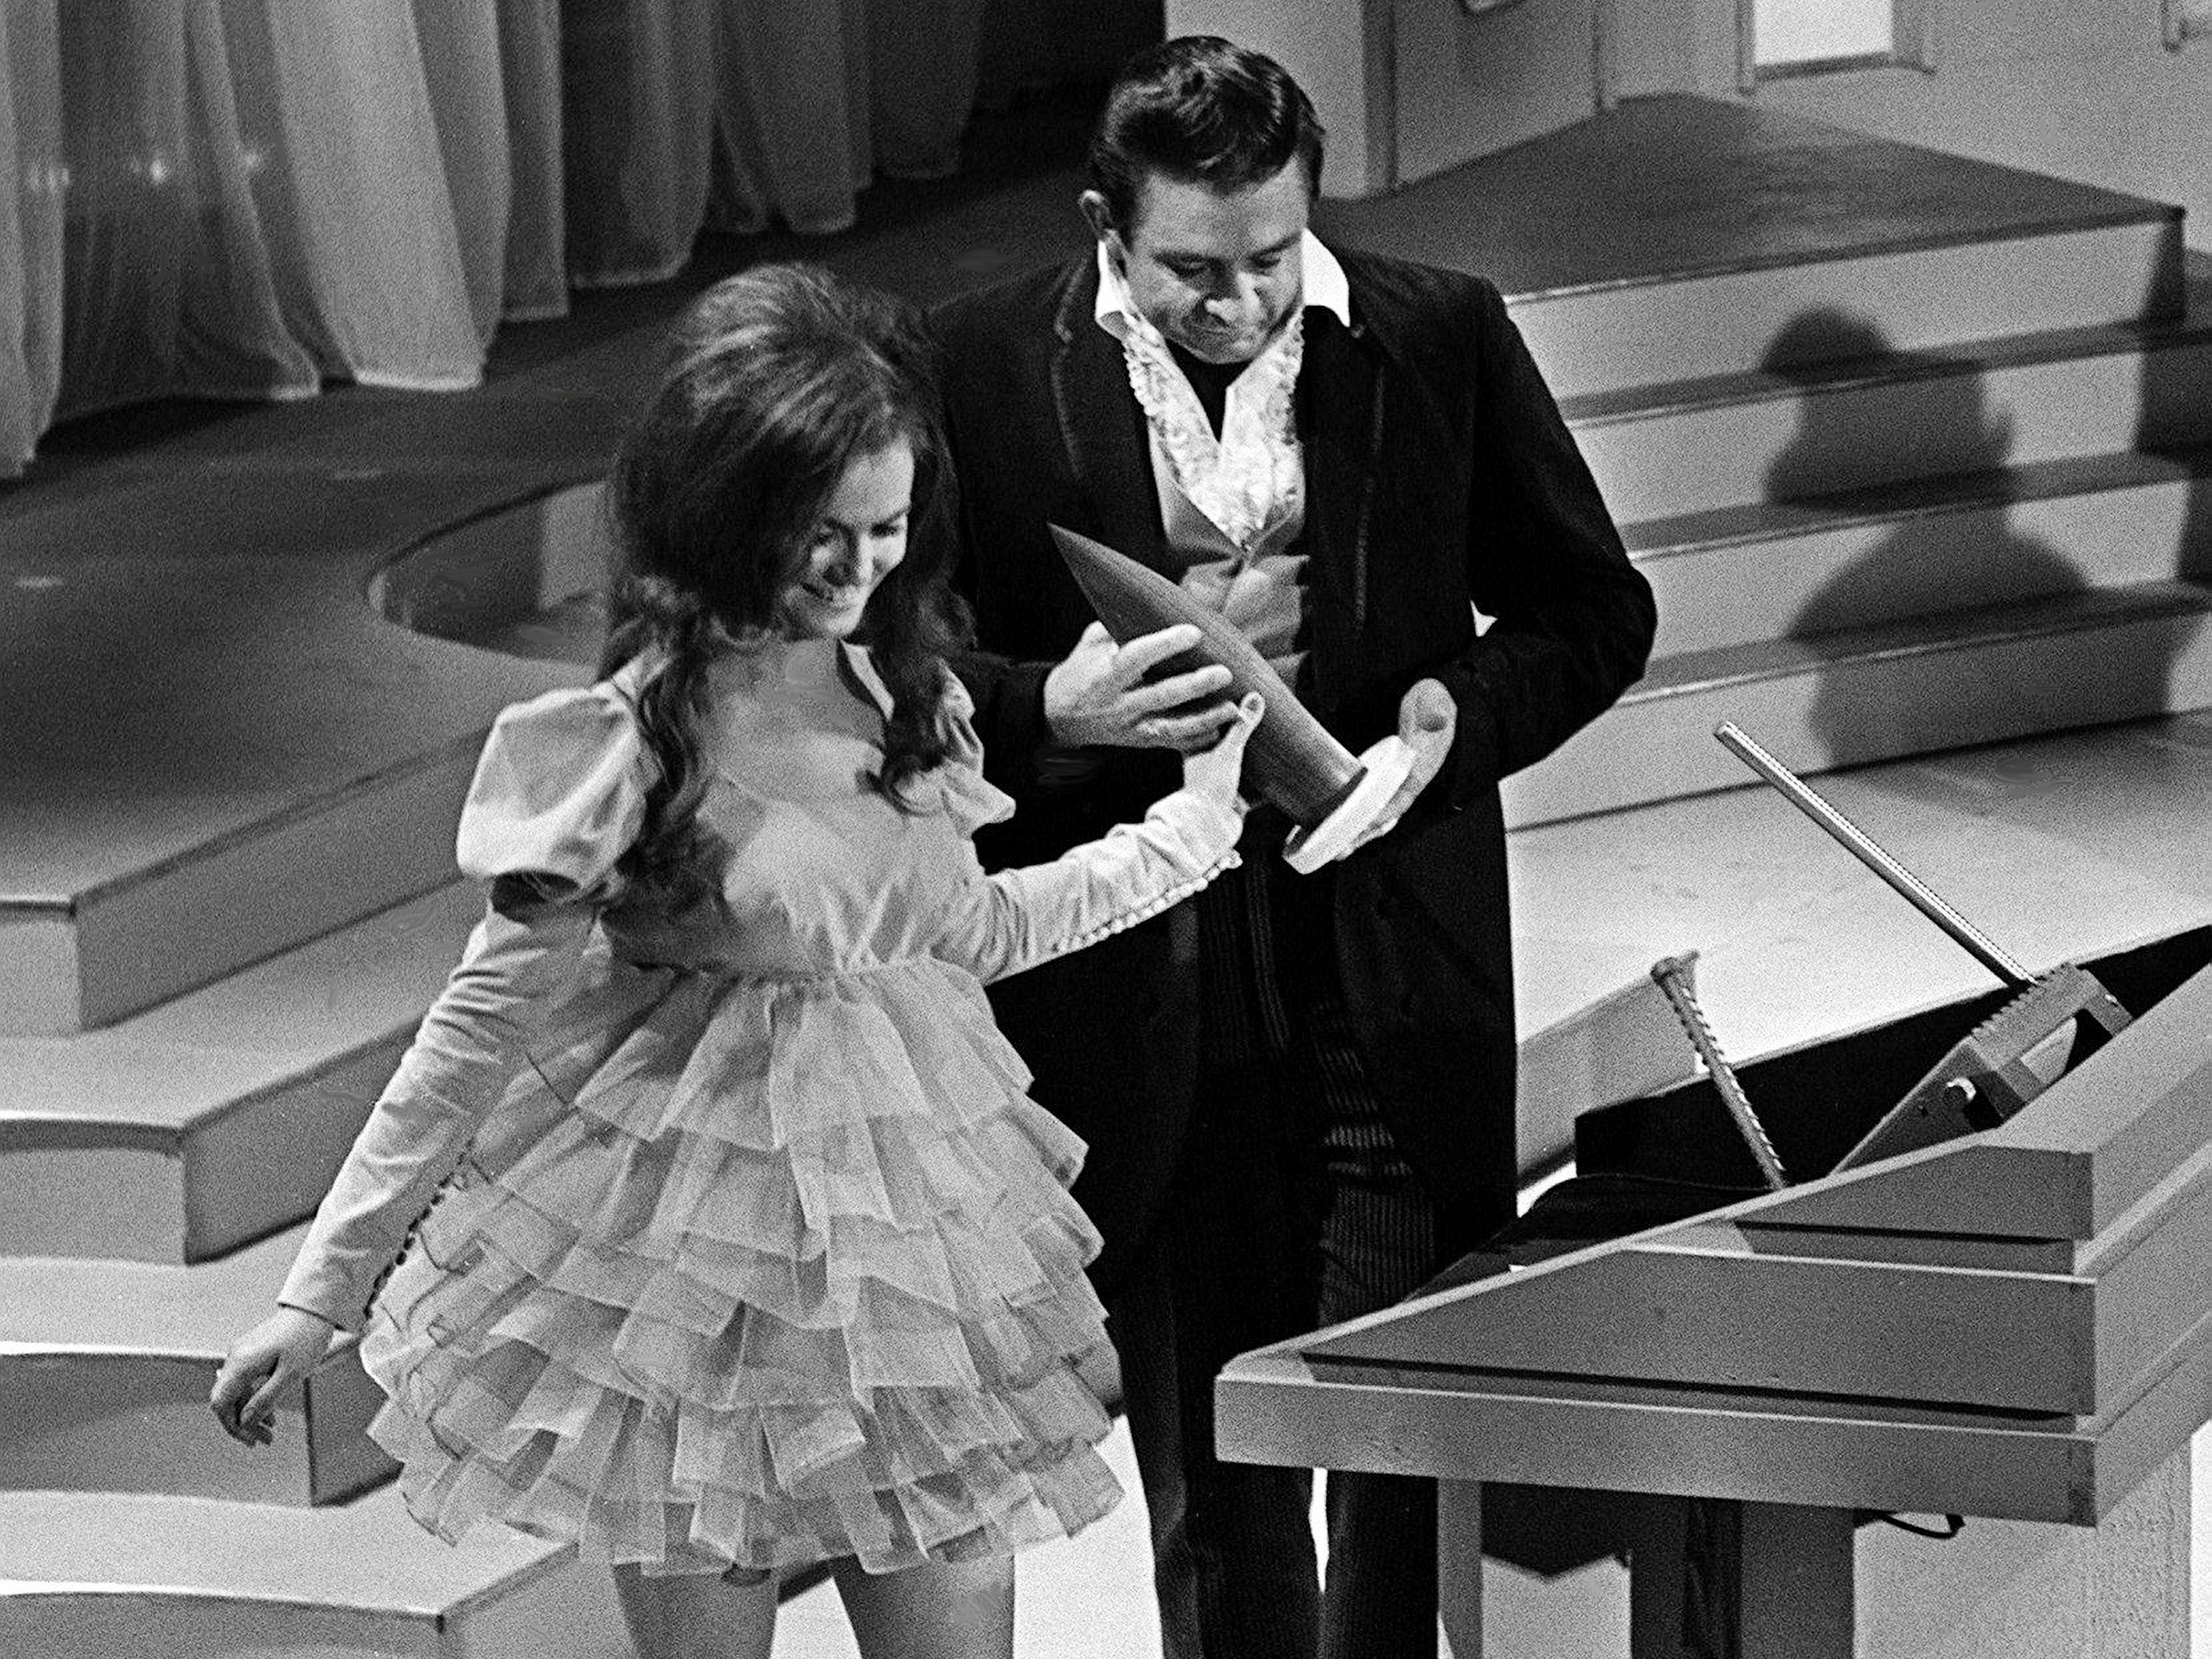 """Johnny Cash, right, receives his Best Album of the Year award from presenter Jeannie C. Riley during the second annual CMA Awards show at the Ryman Auditorium on Oct. 18, 1968. Cash won with his """"Folsom Prison Blues"""" album."""